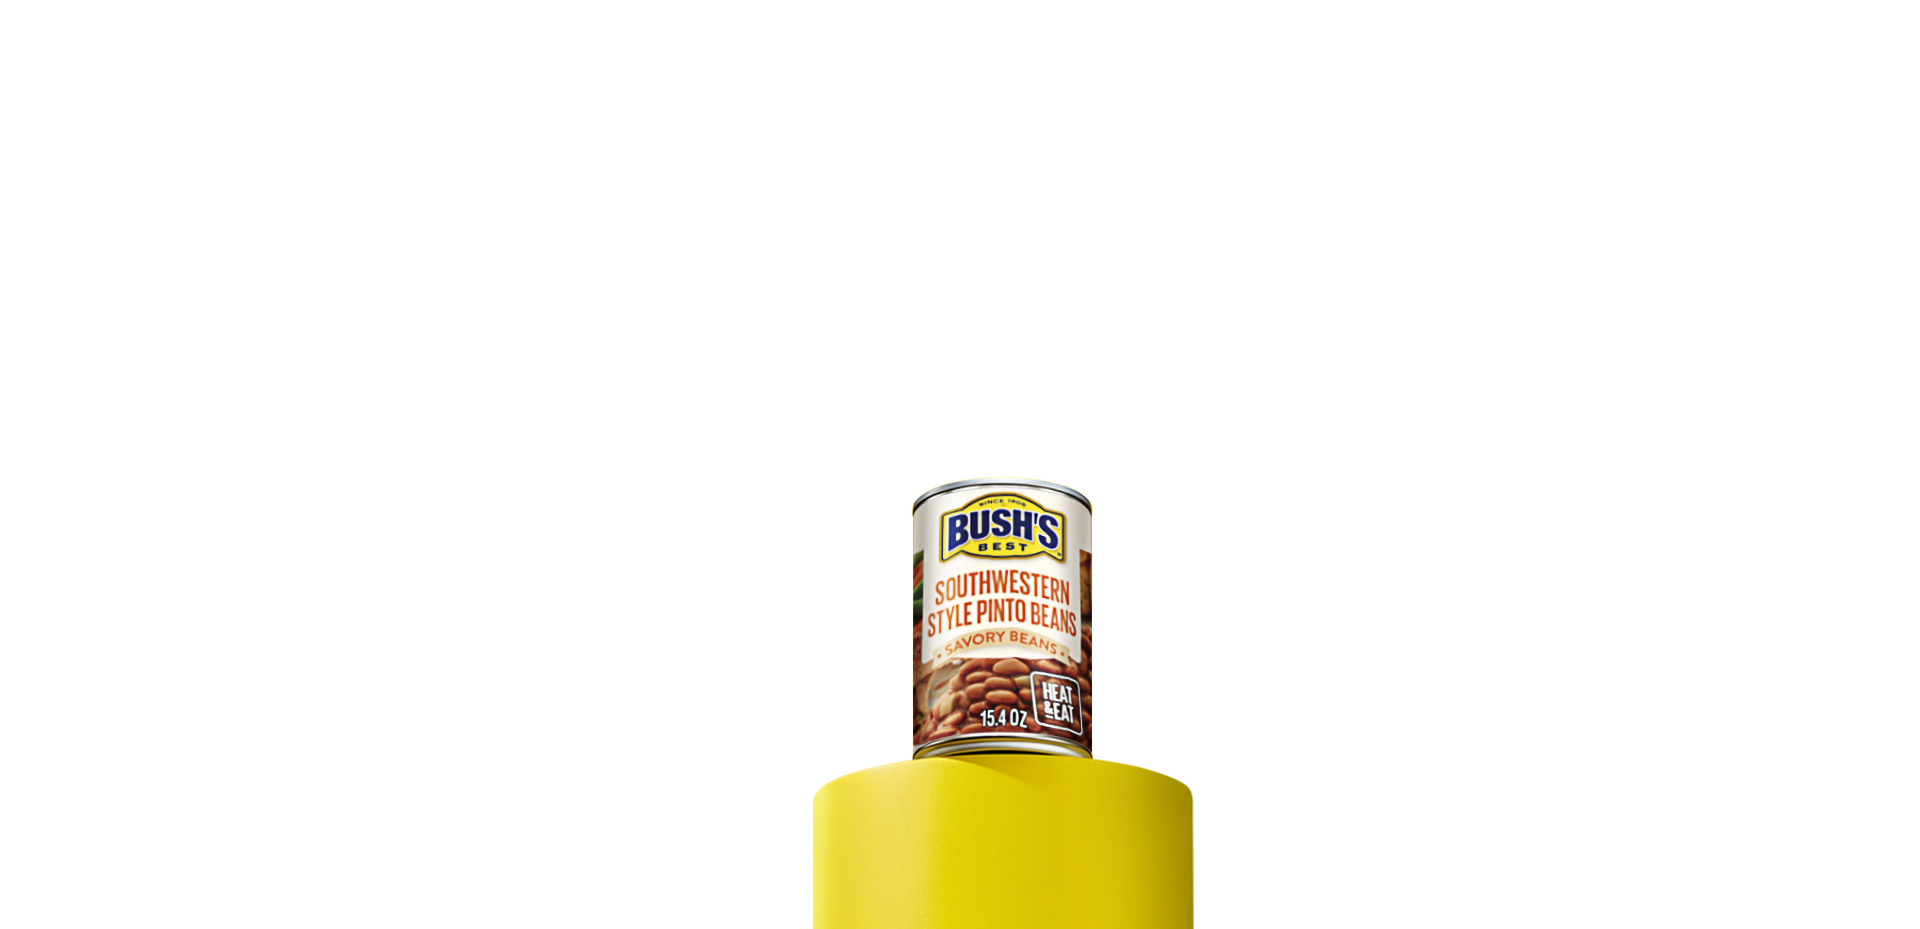 A can of Bush's Best Savory Beans Southwestern Style Pinto beans sitting on a yellow column